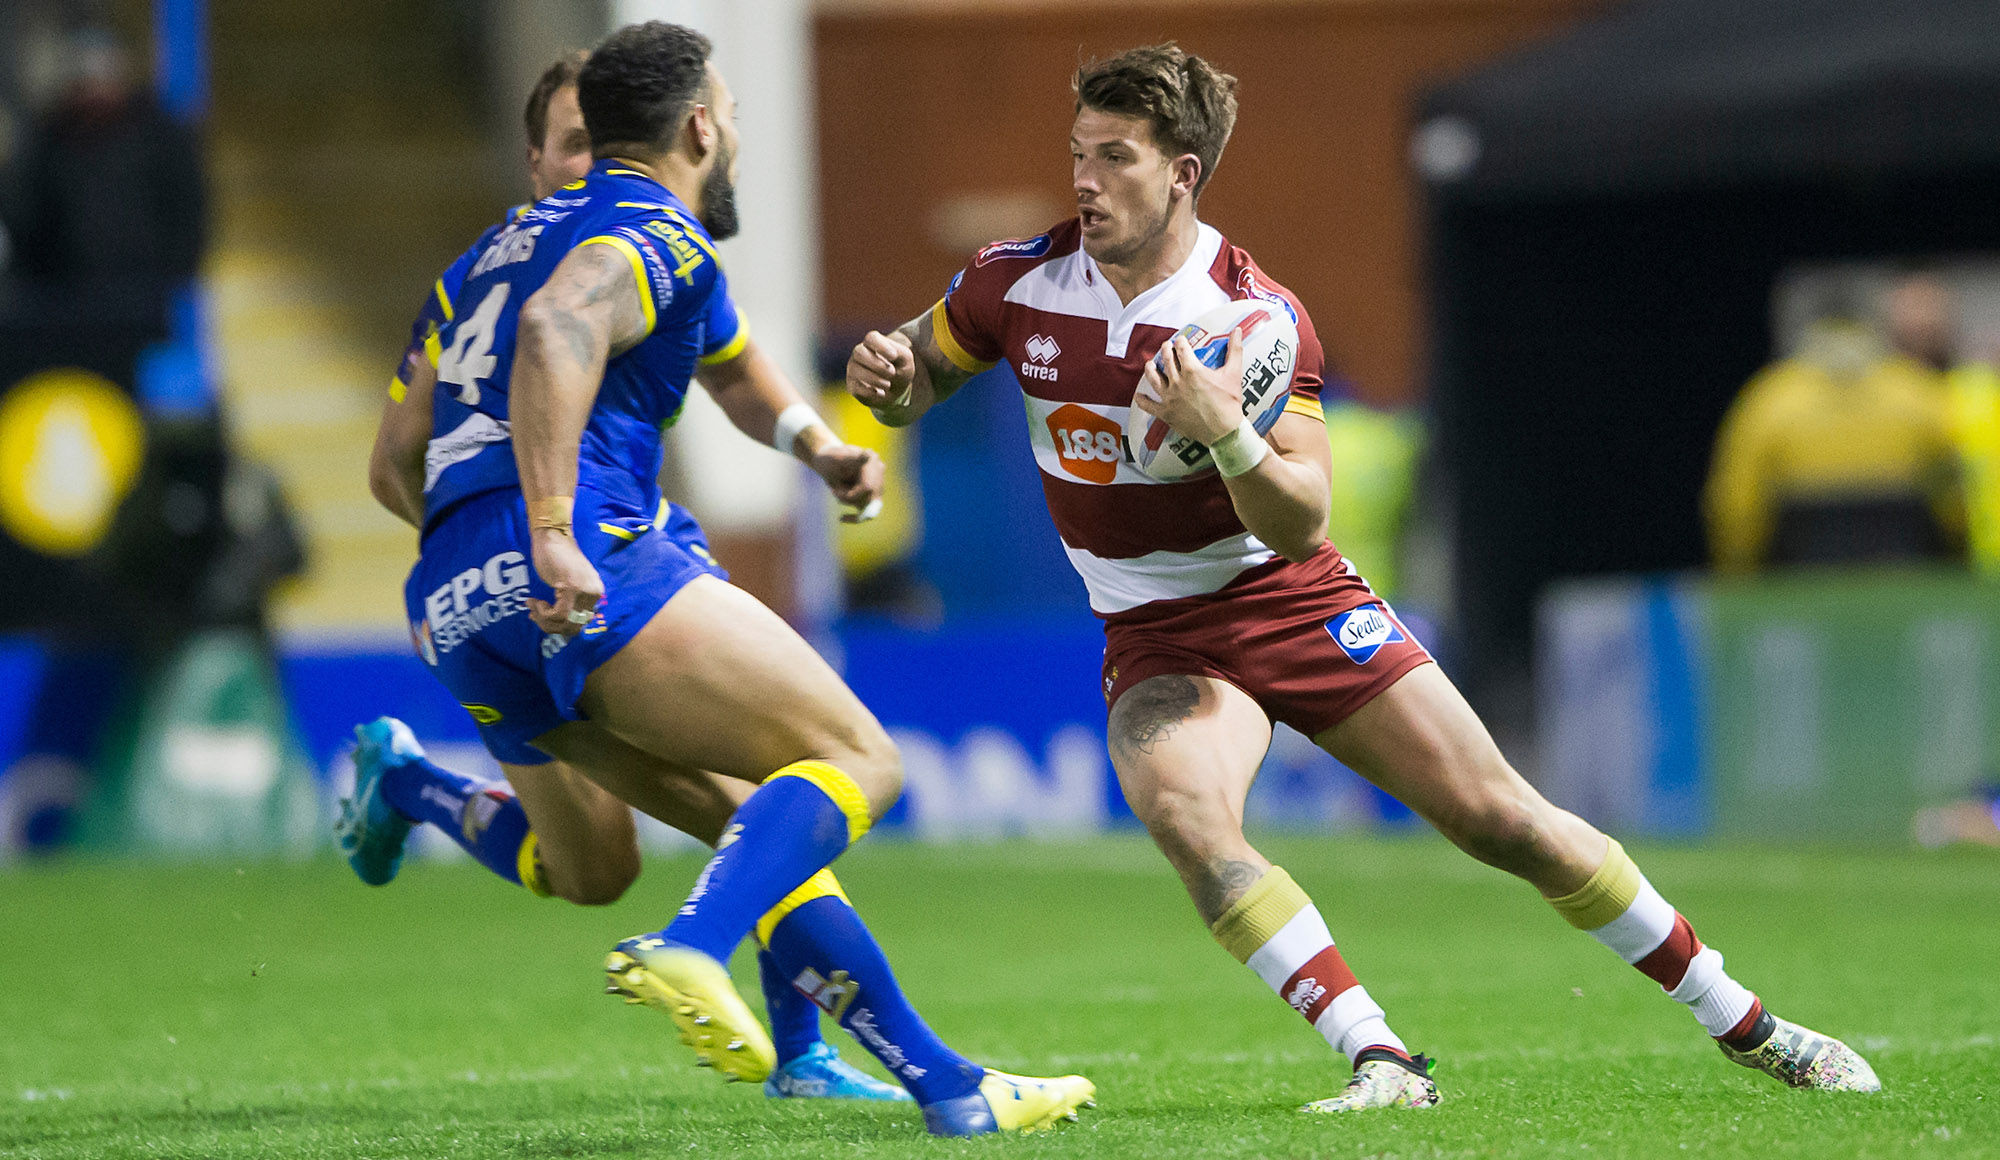 Warrington cup tie confirmed